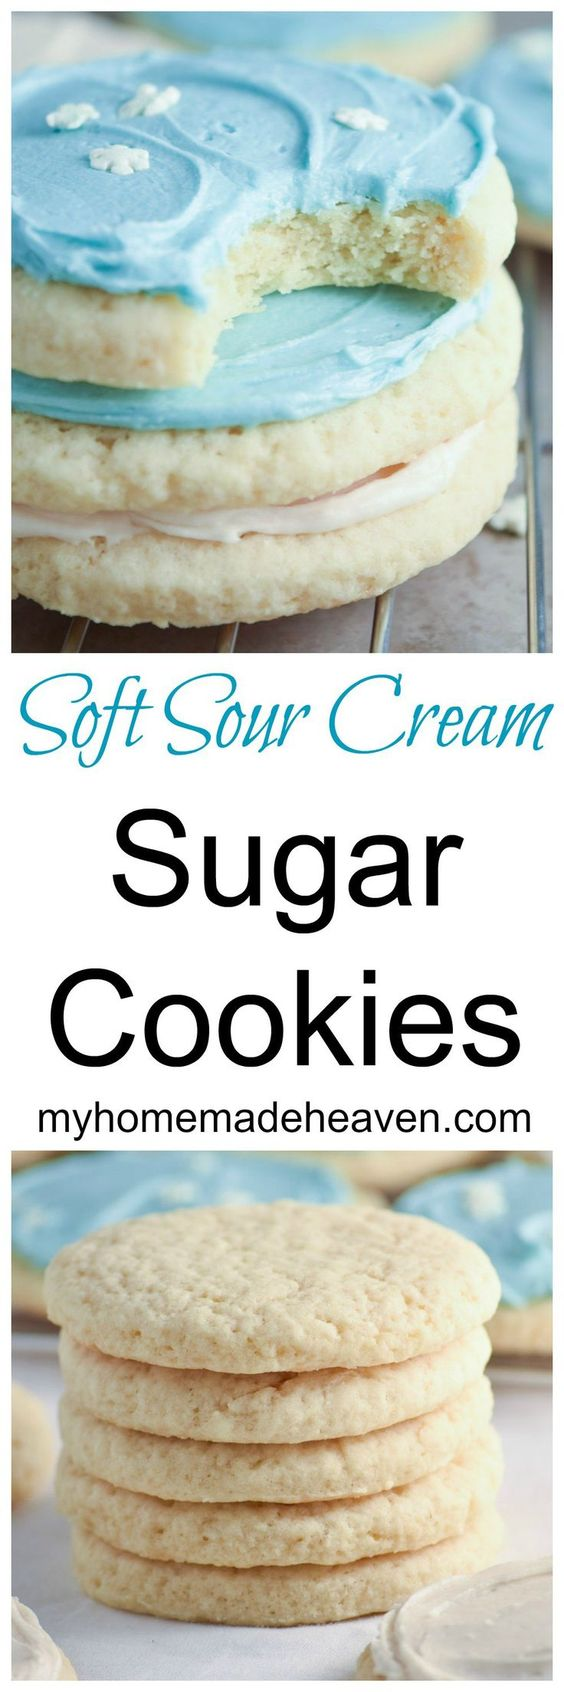 Soft Sour Cream Sugar Cookies.